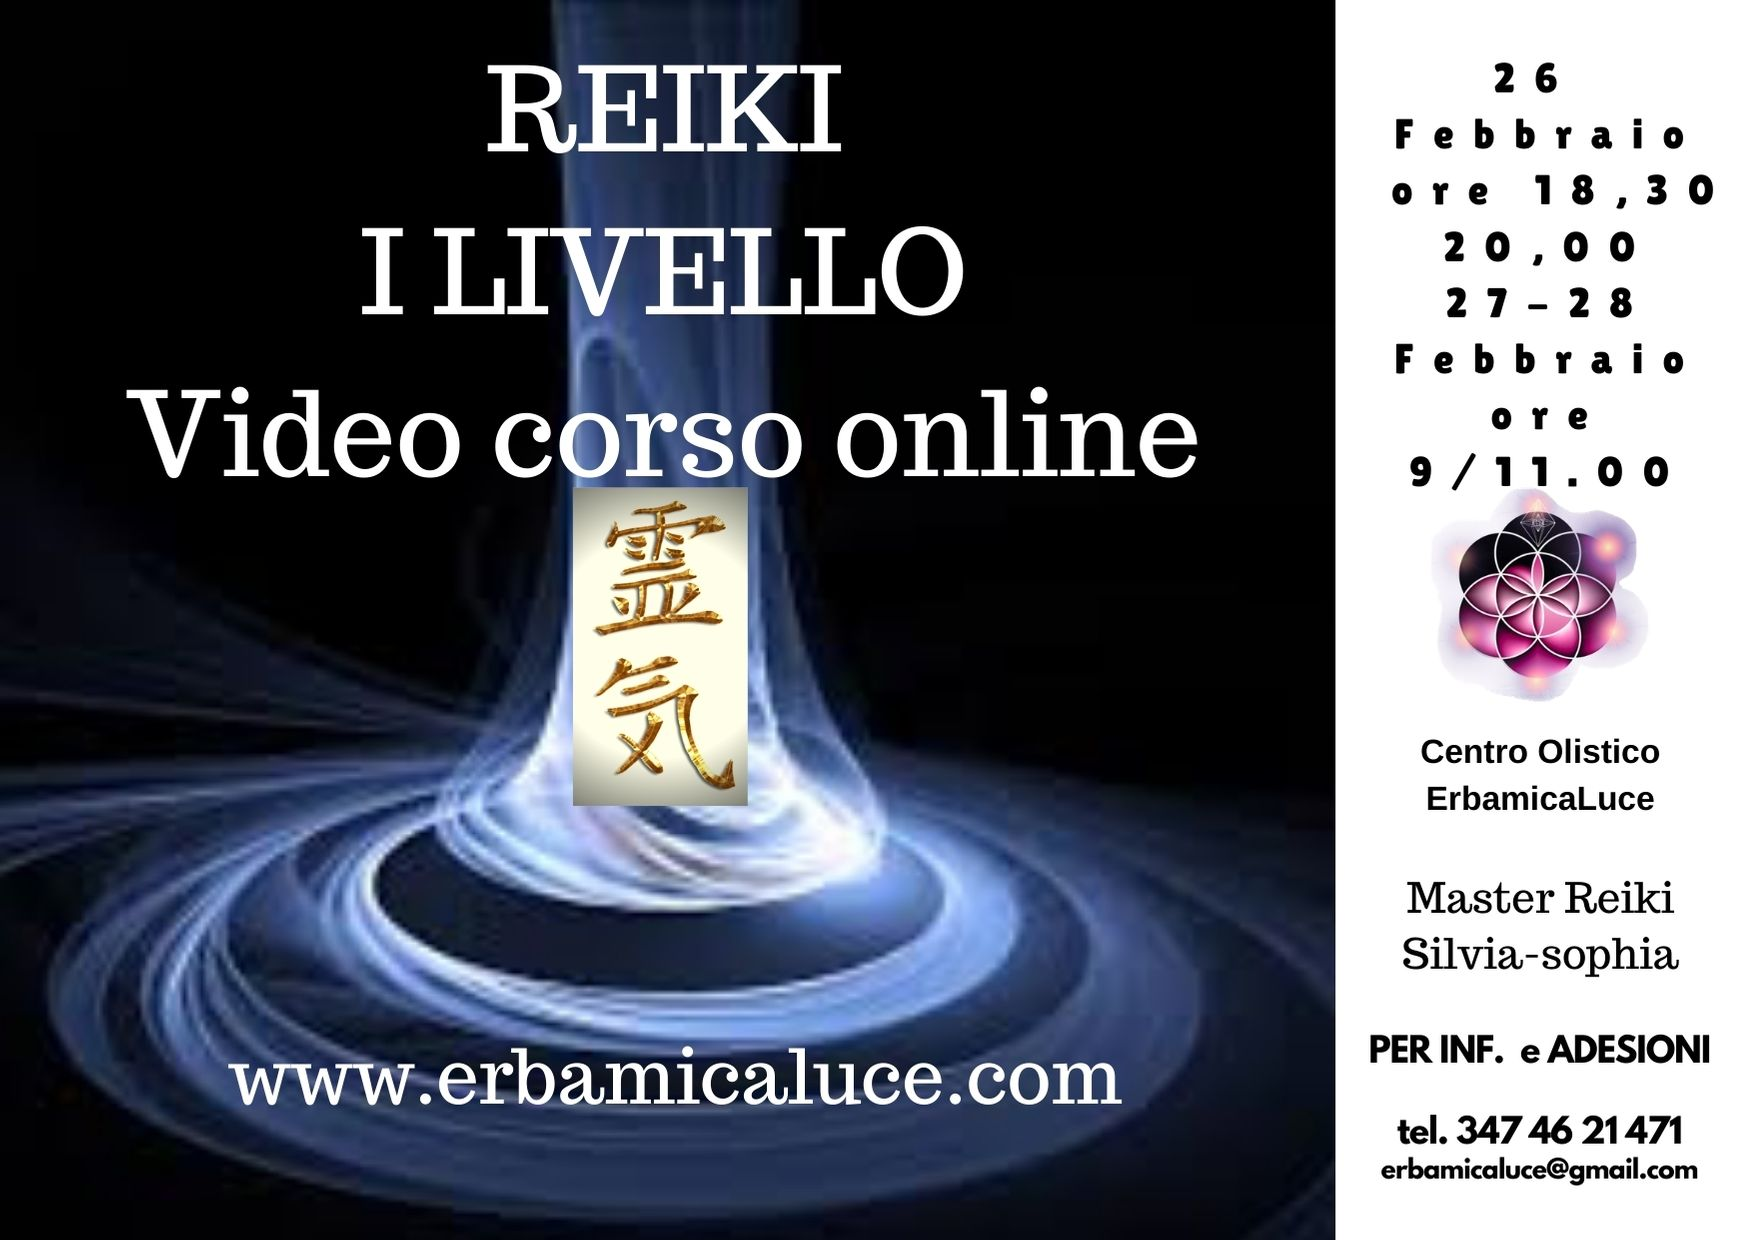 Reiki Video corso